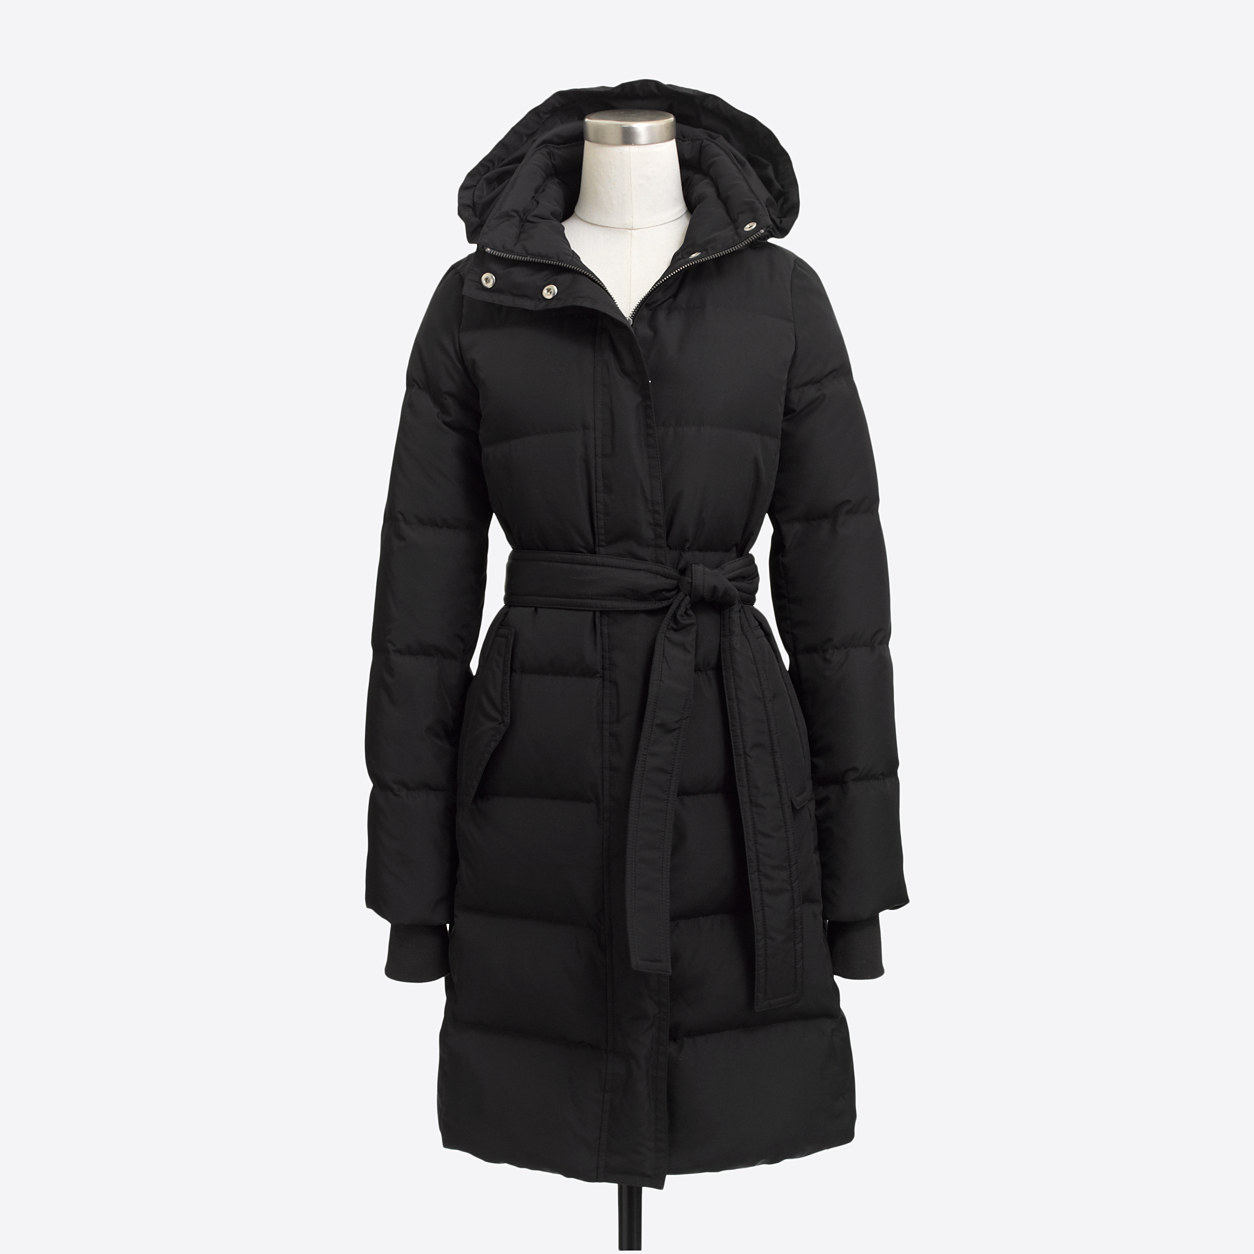 Long Belted Puffer Jacket : Women's Jackets & Coats | J.Crew